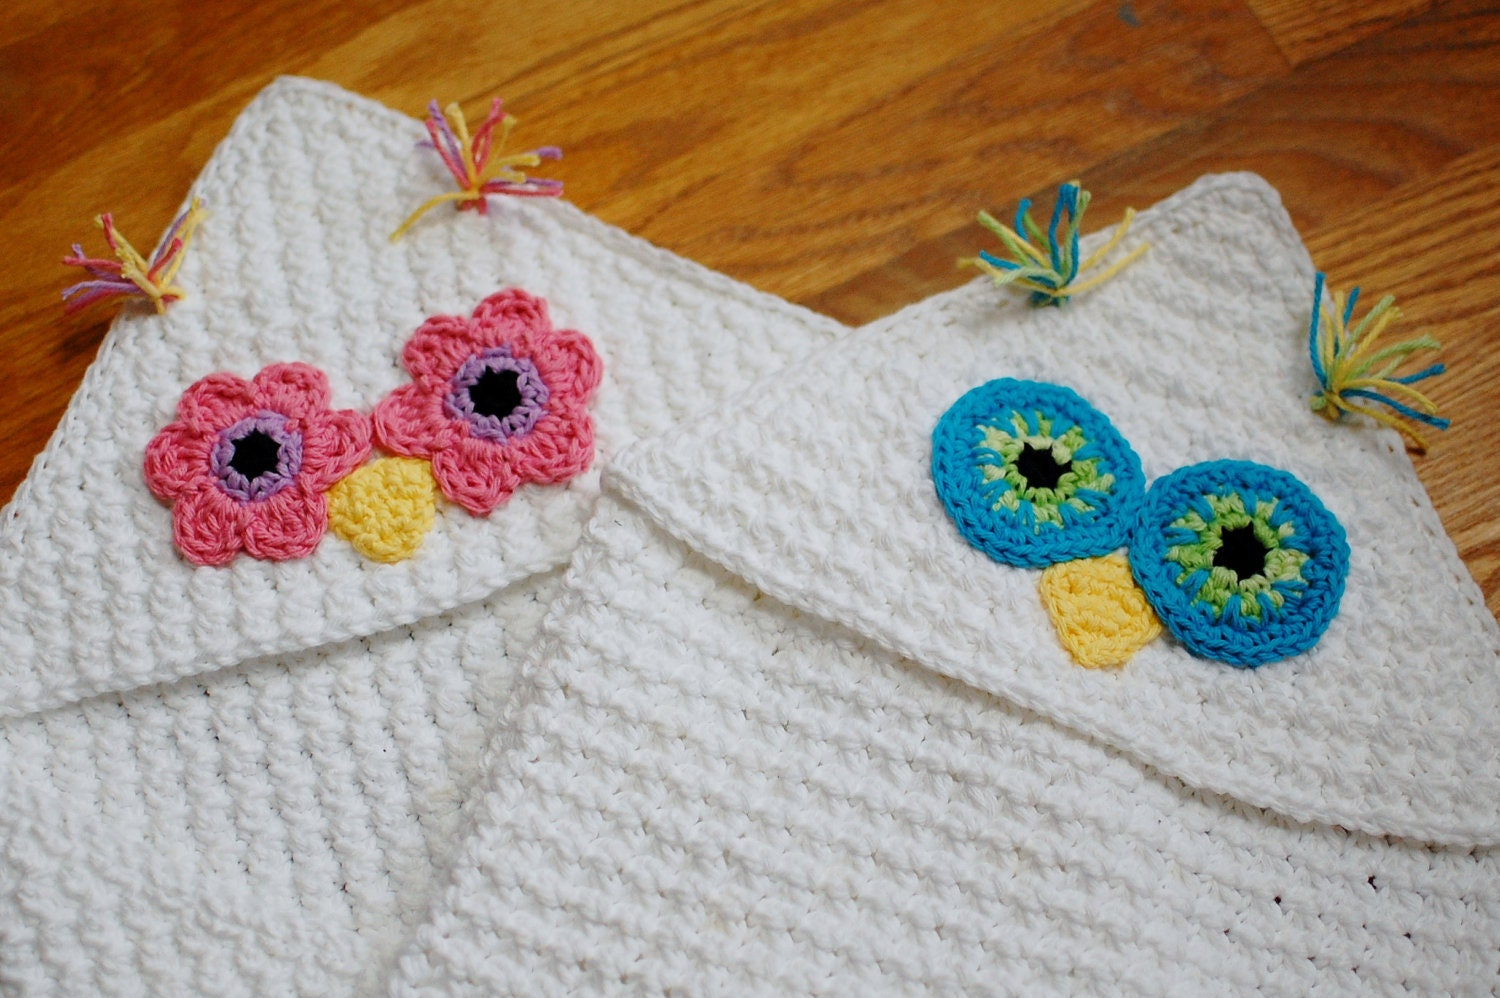 Crochet Patterns For Baby Blankets With Hoods Crochet Pattern Owl Hooded